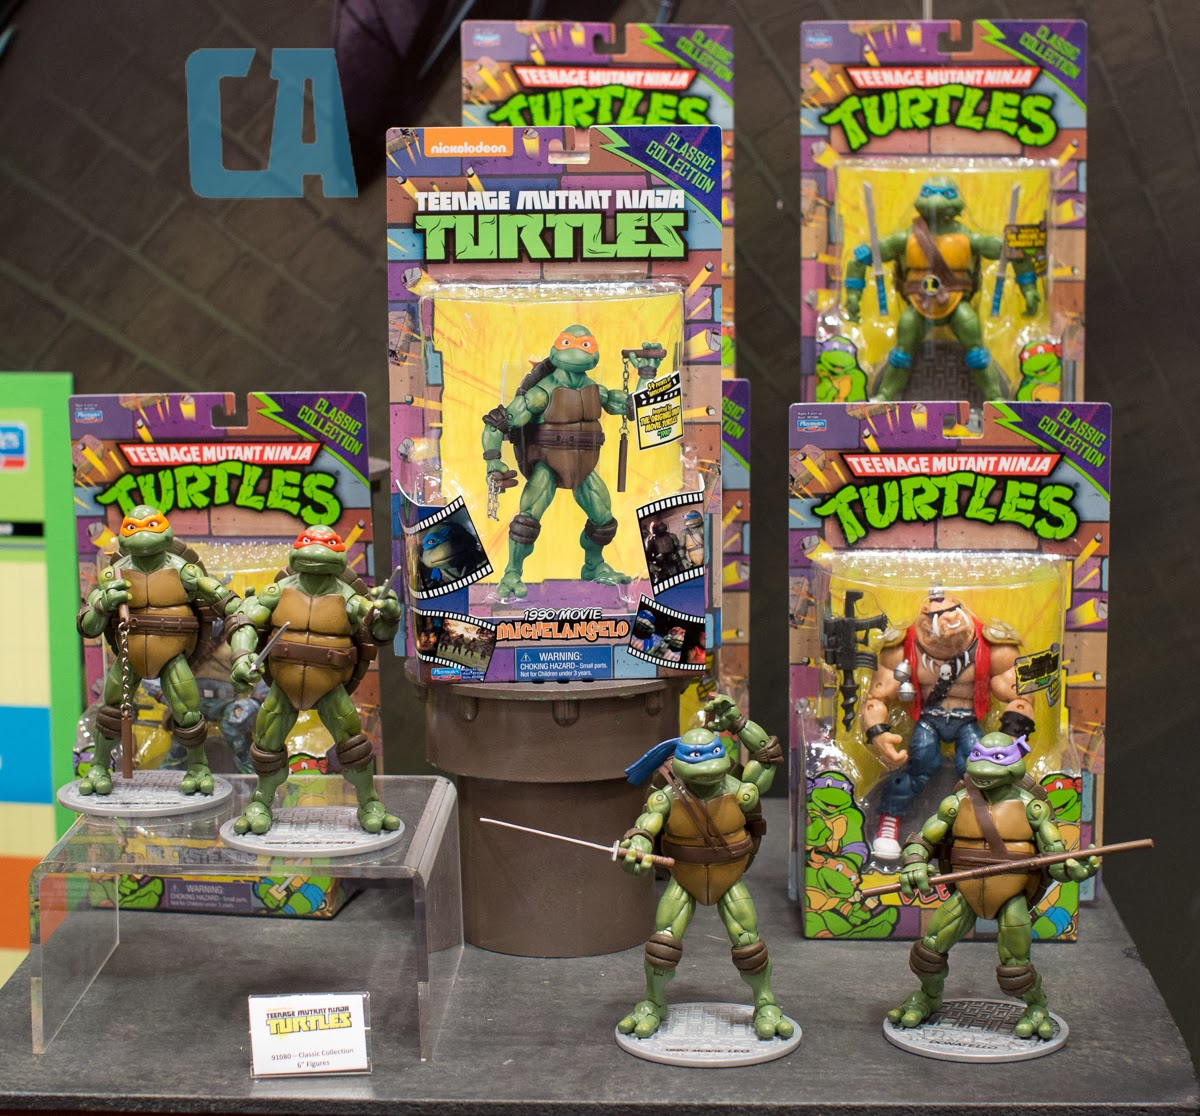 Toy-Fair-2014-Playmate-Teenage-Mutant-Ninja-Turtles-35.jpg